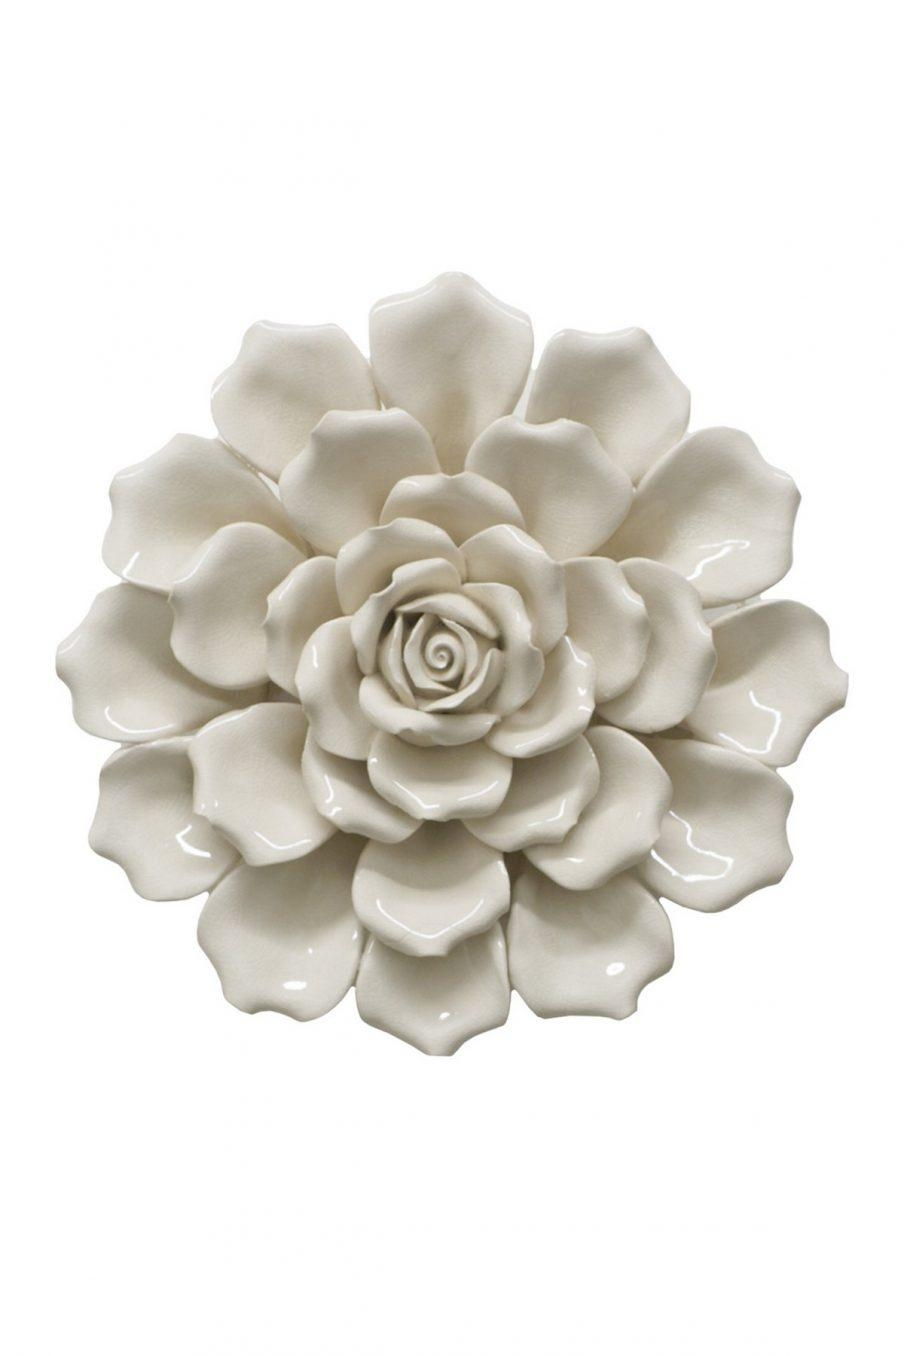 Wall Decor Ceramic Flower Pictures Small With Regard To